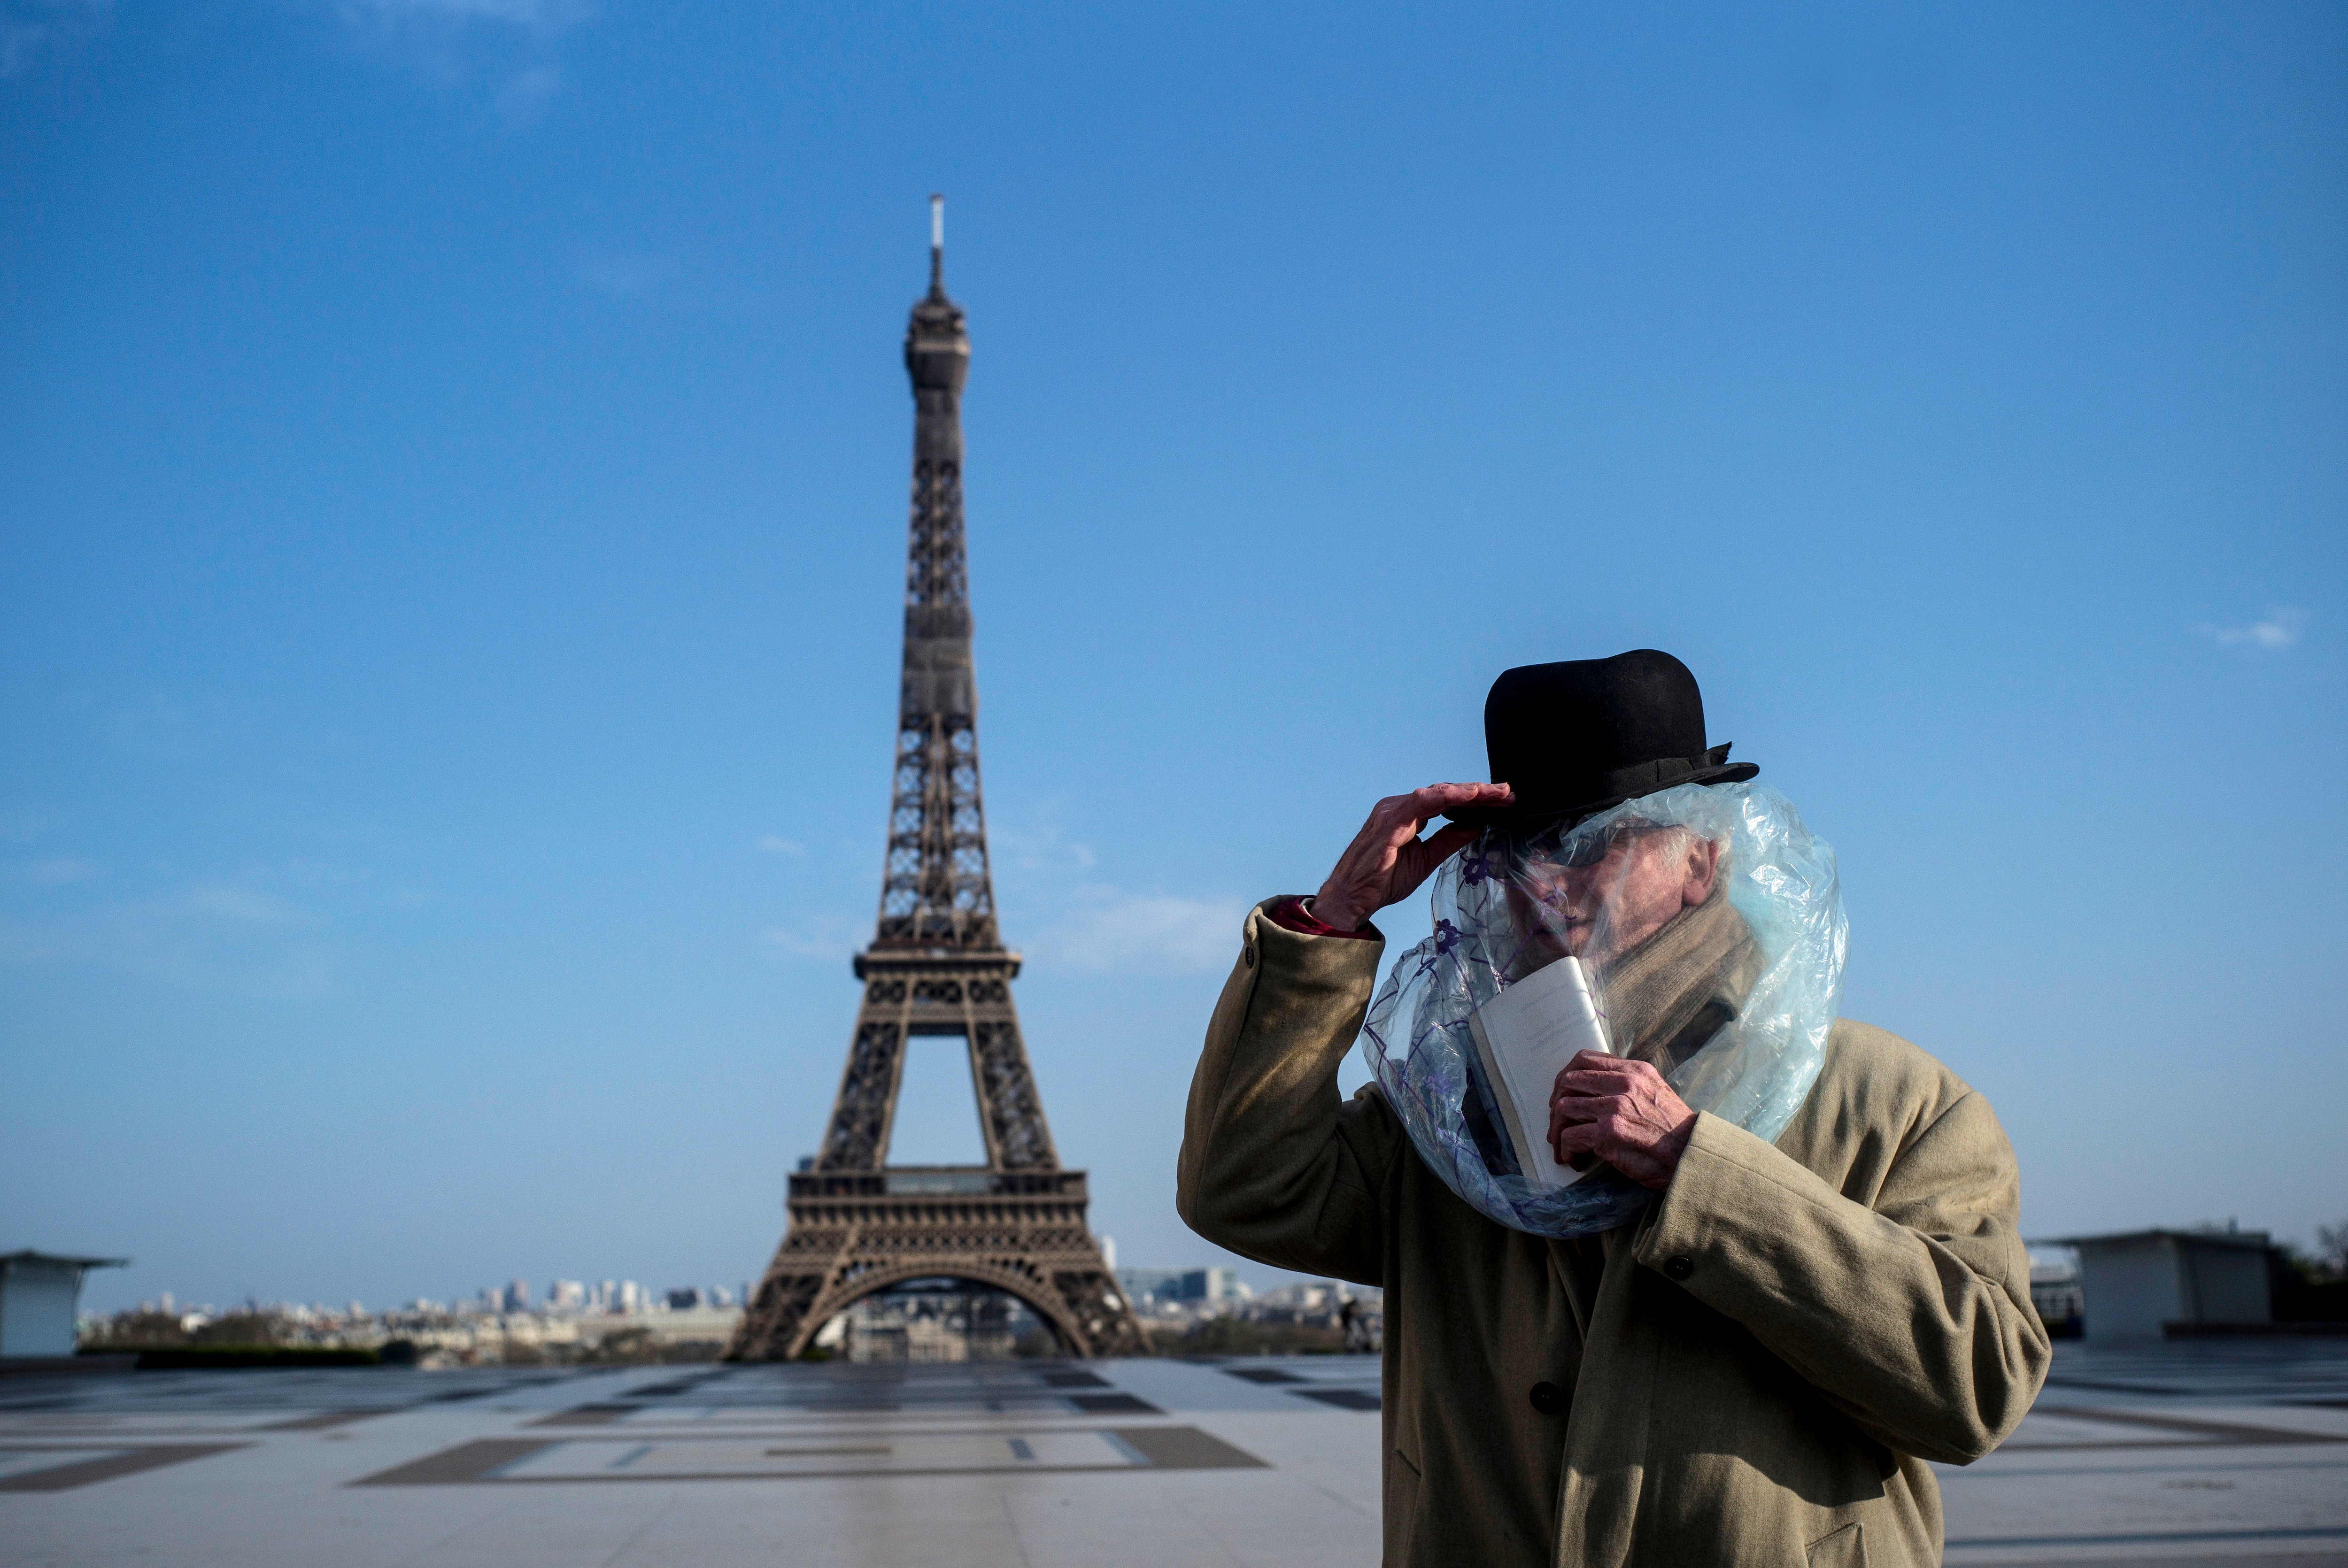 A man covered with a plastic bag for protection reads a book in front of the Eiffel Tower in Paris, France